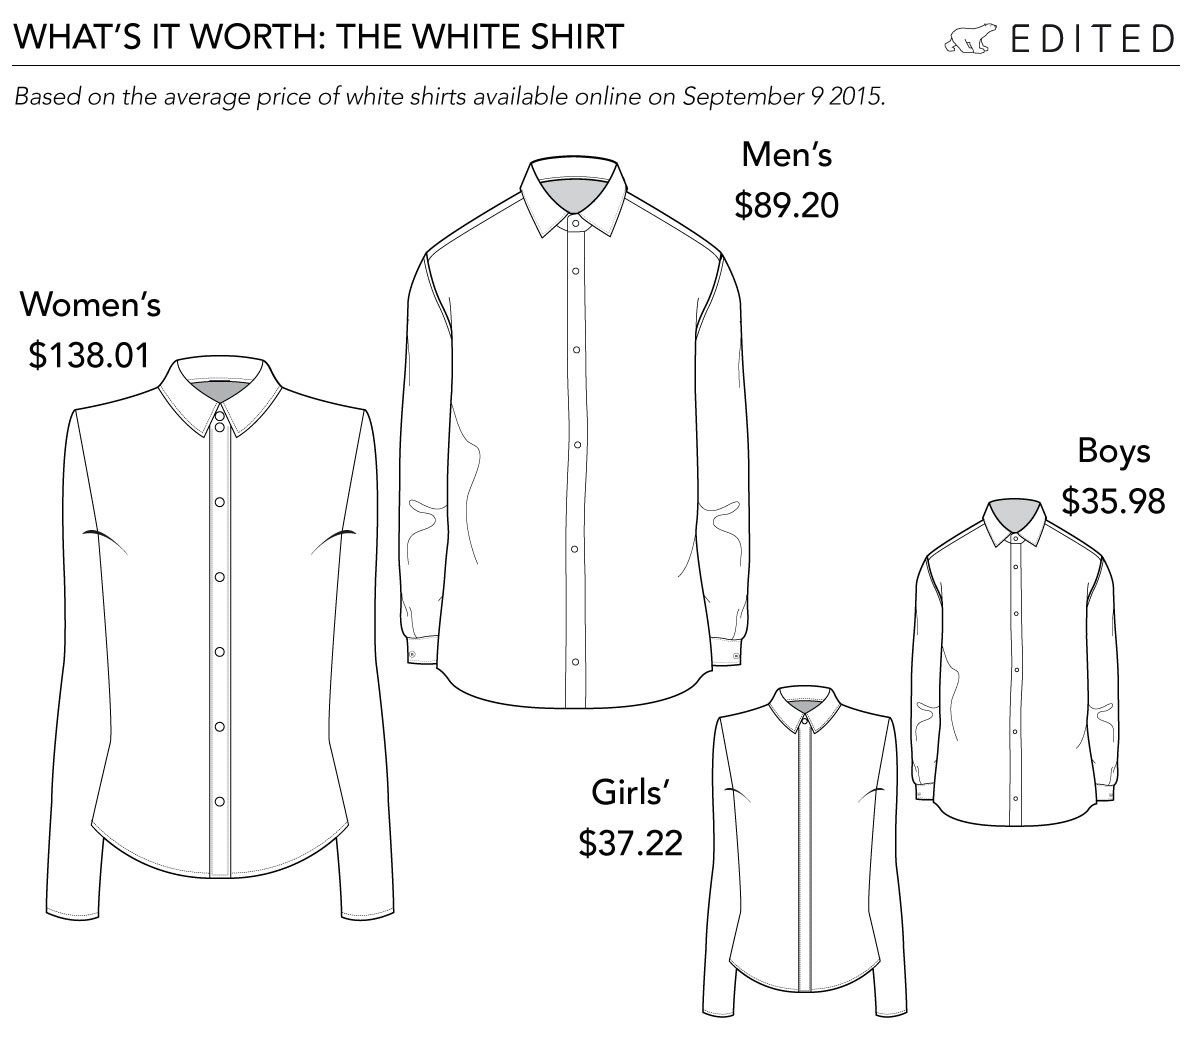 Want a bargain shirt? Hopefully you're a small boy - theirs are the cheapest on average.